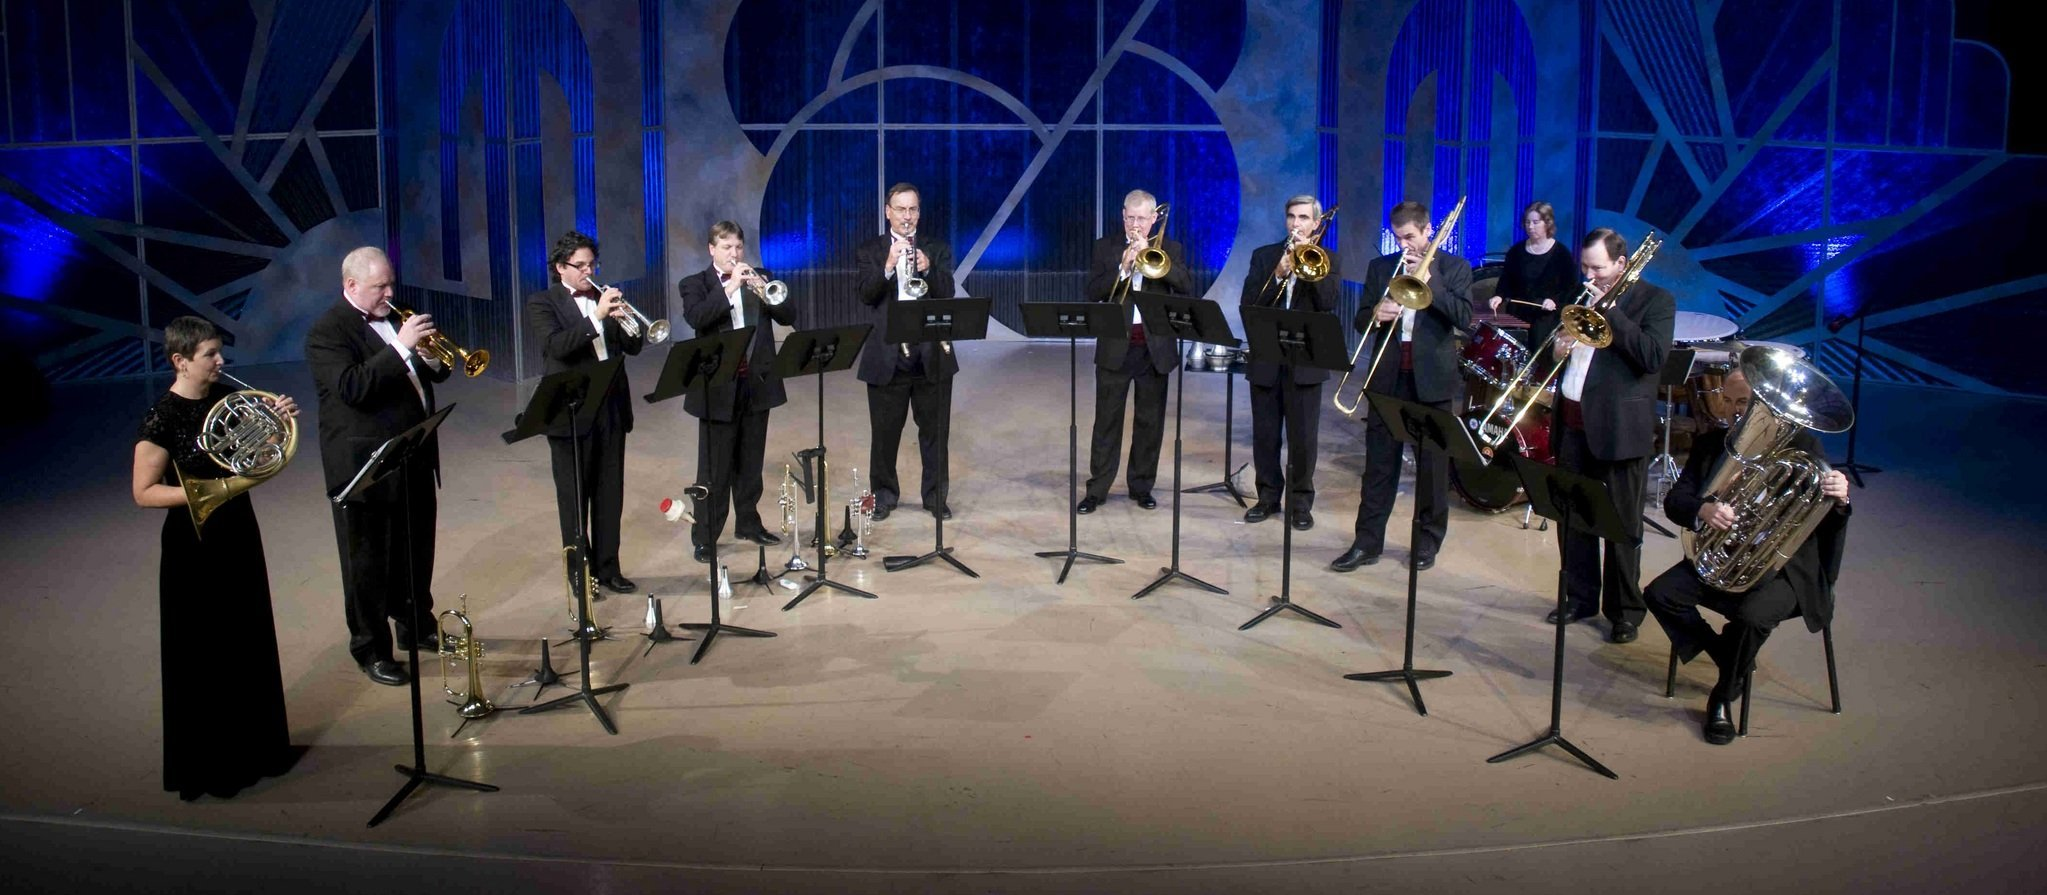 7e2a9726ef2330633fb8_Photo_1_-_Solid_Brass_in_concert.jpg